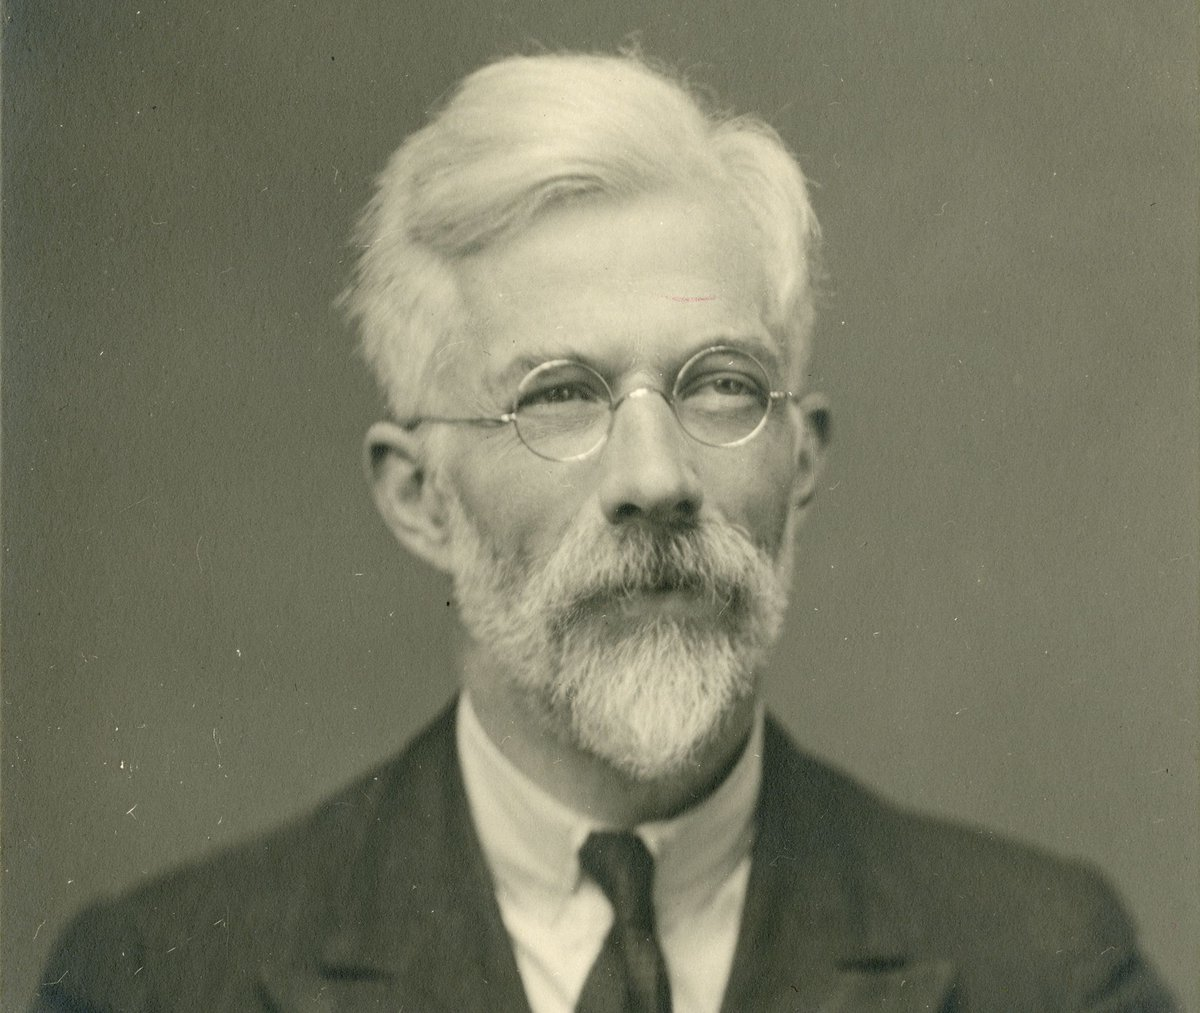 #OnThisDay in 1890 Sir Ronald Fisher, was born. Sir David Spiegelhalter discusses how the work of amateur mathematician Thomas Bayes and statistician Ronald Fisher helped to shape the current thinking of probability. Watch the video  #PeopleOfScience #Maths